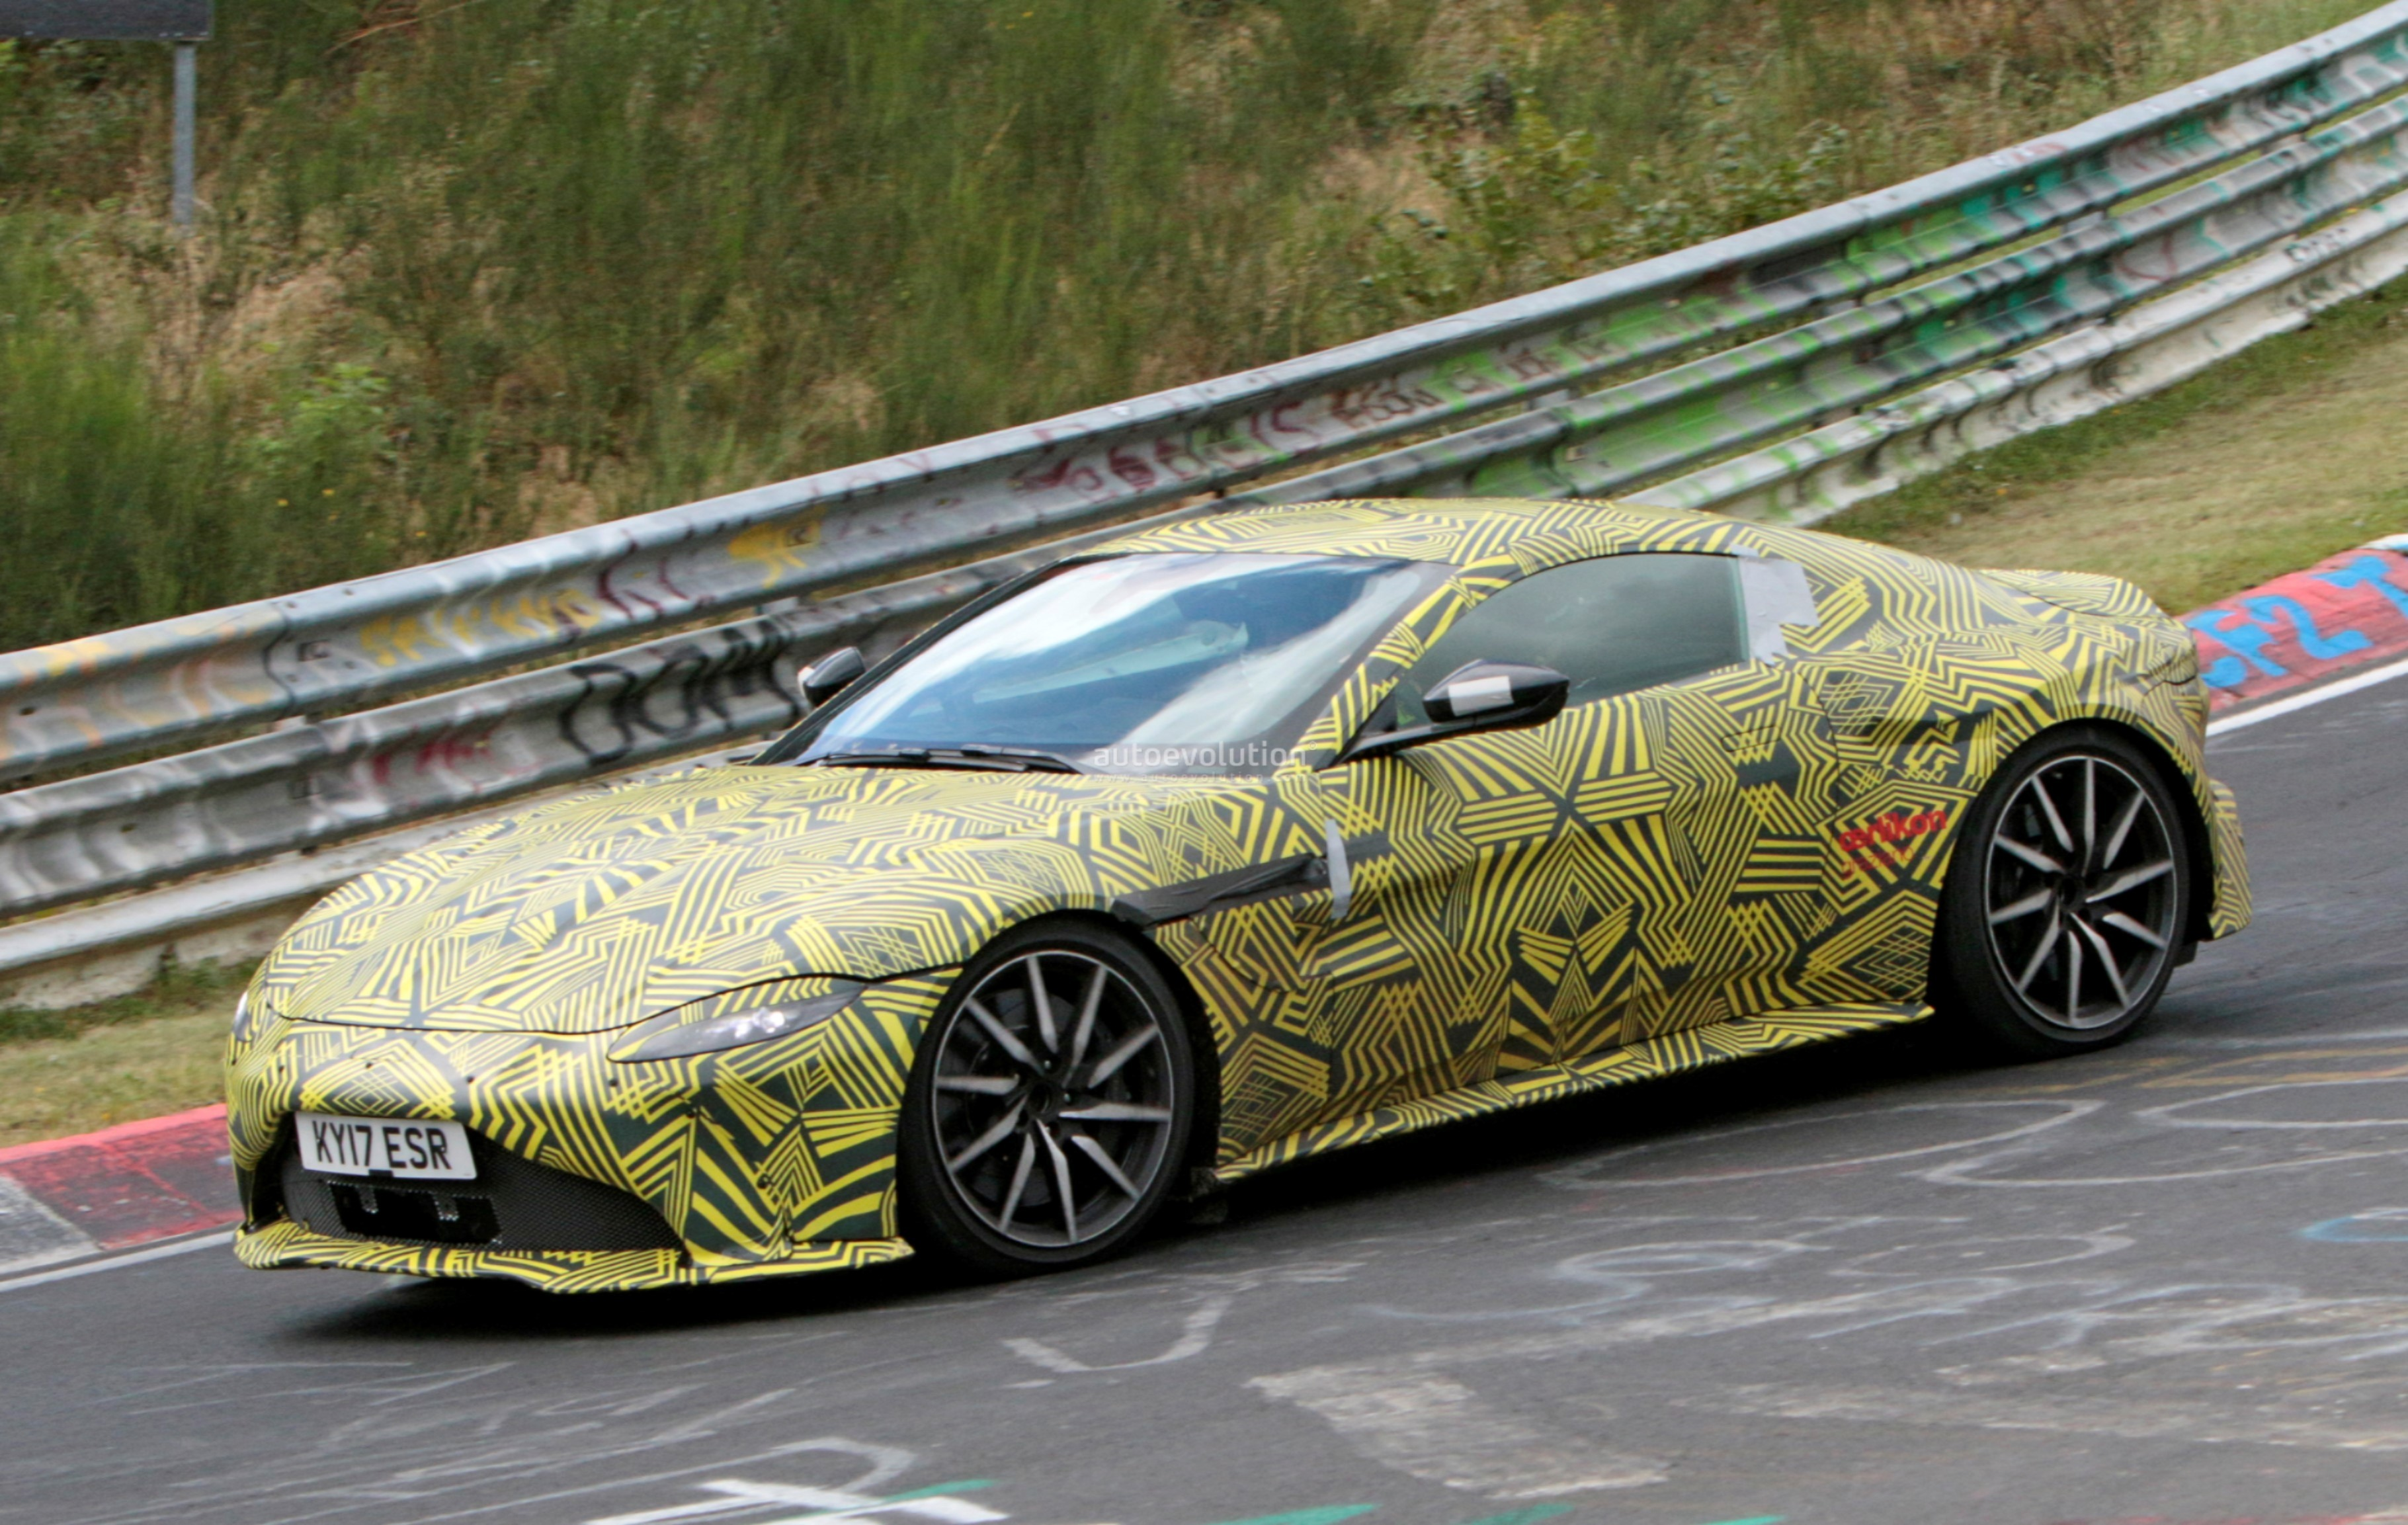 2019-aston​-martin-v8​-vantage-s​pied-on-nu​rburgring-​looks-gorg​eous-even-​with-camo_​5